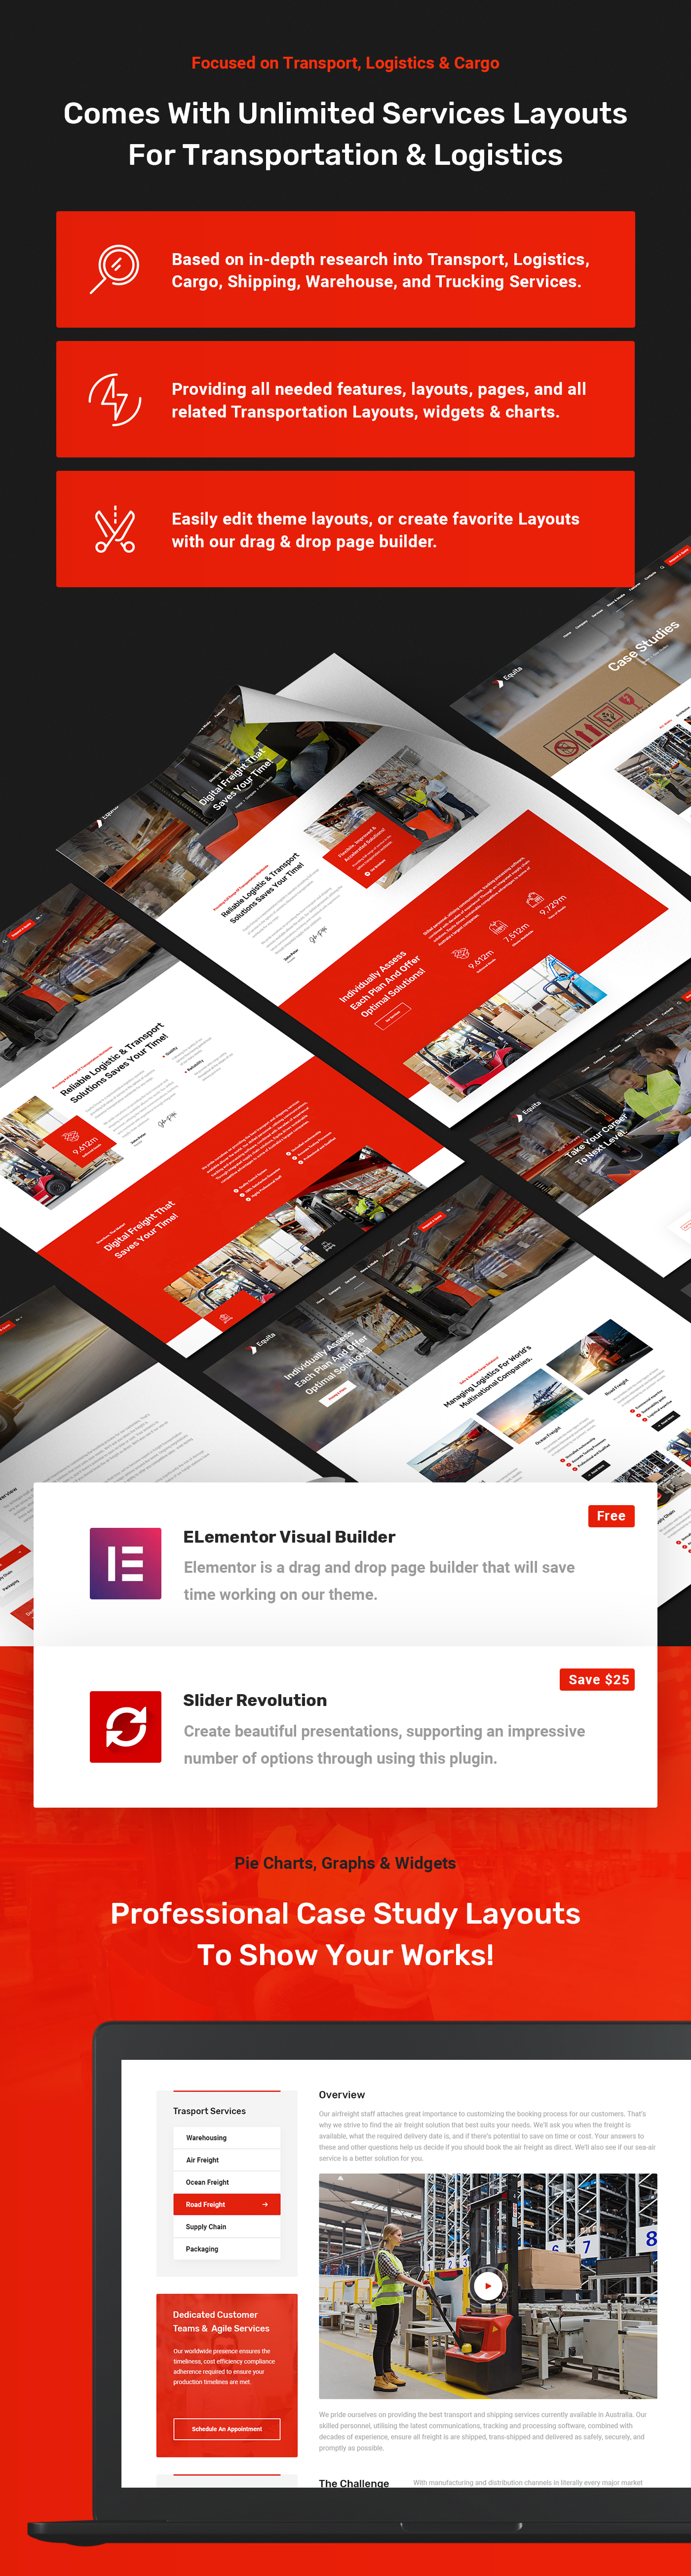 Equita - Logistics Cargo WordPress Theme - 7